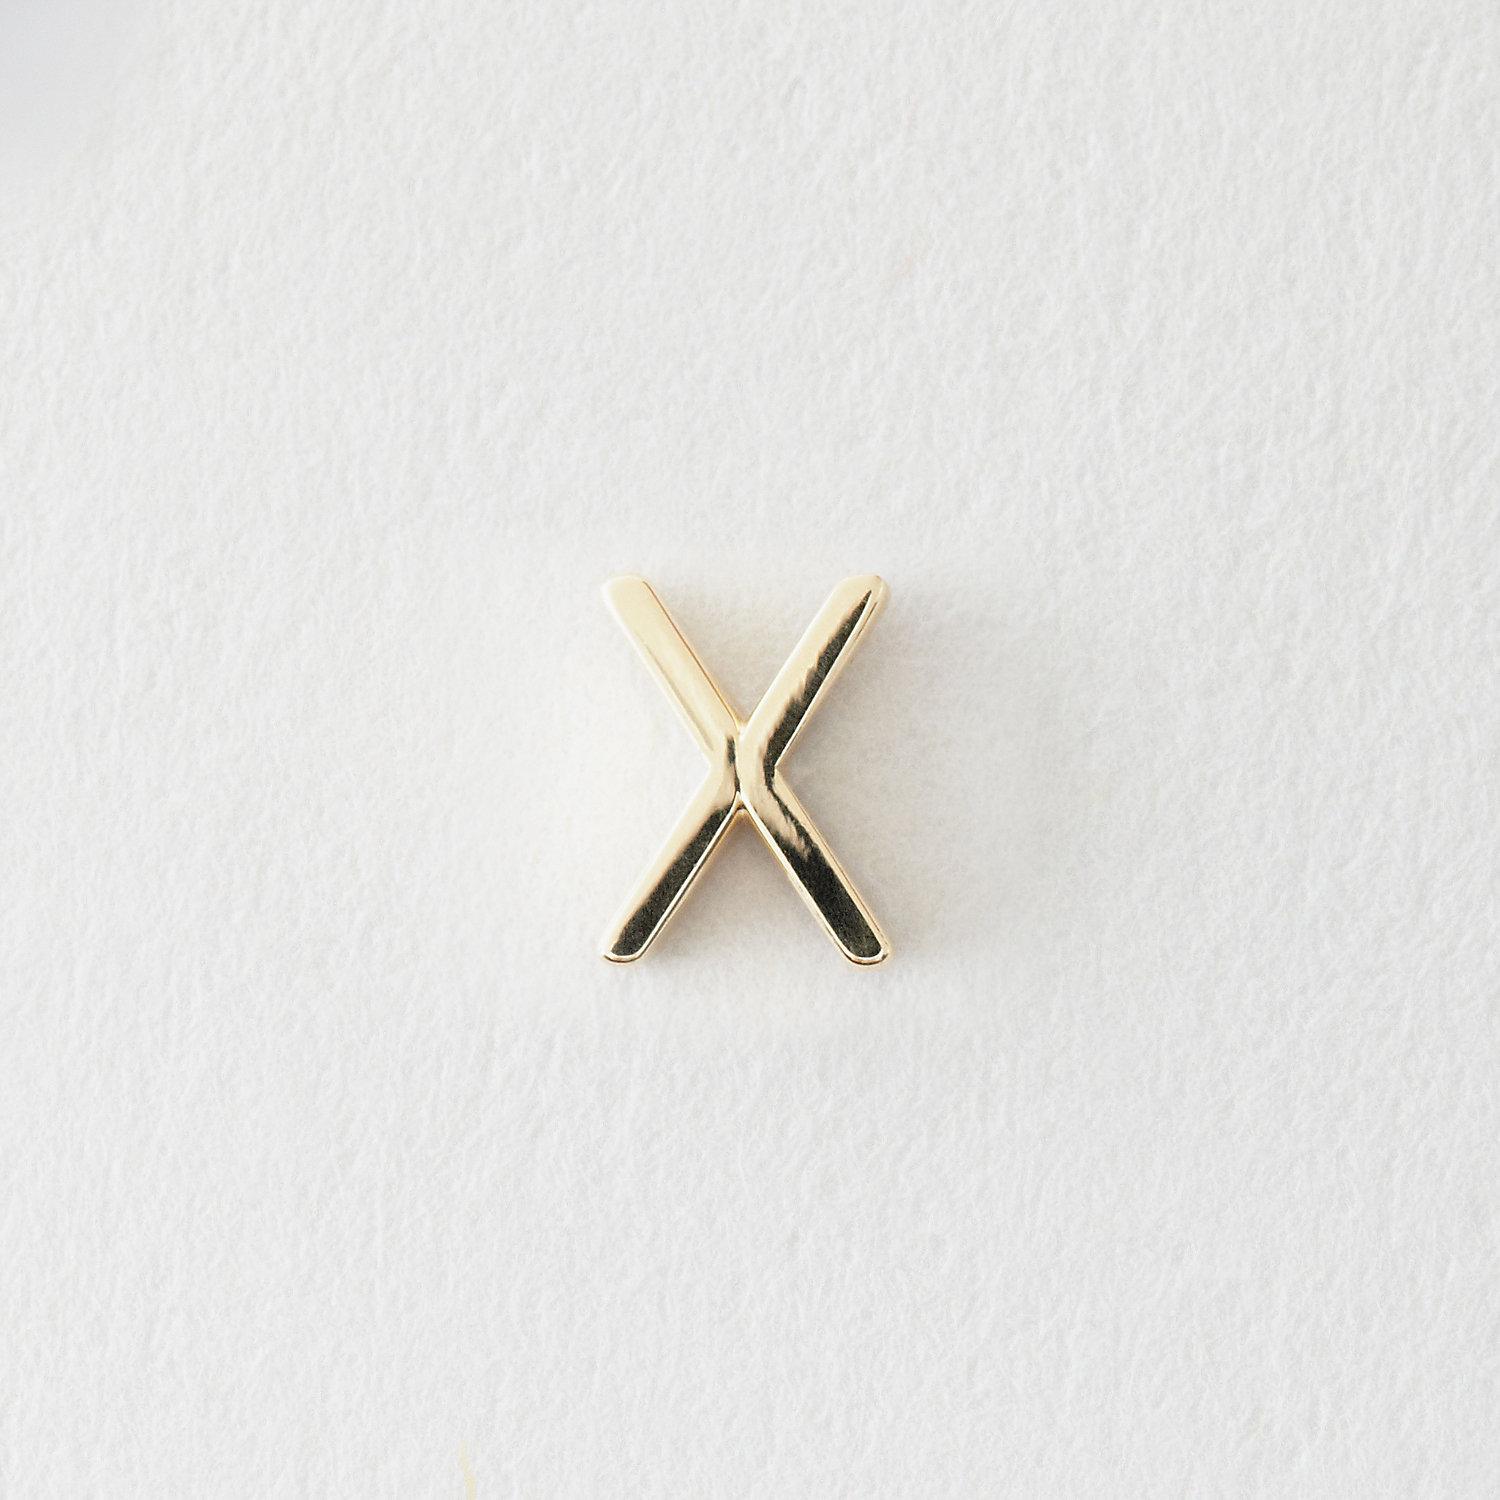 MINI LETTER STUD EARRING - X